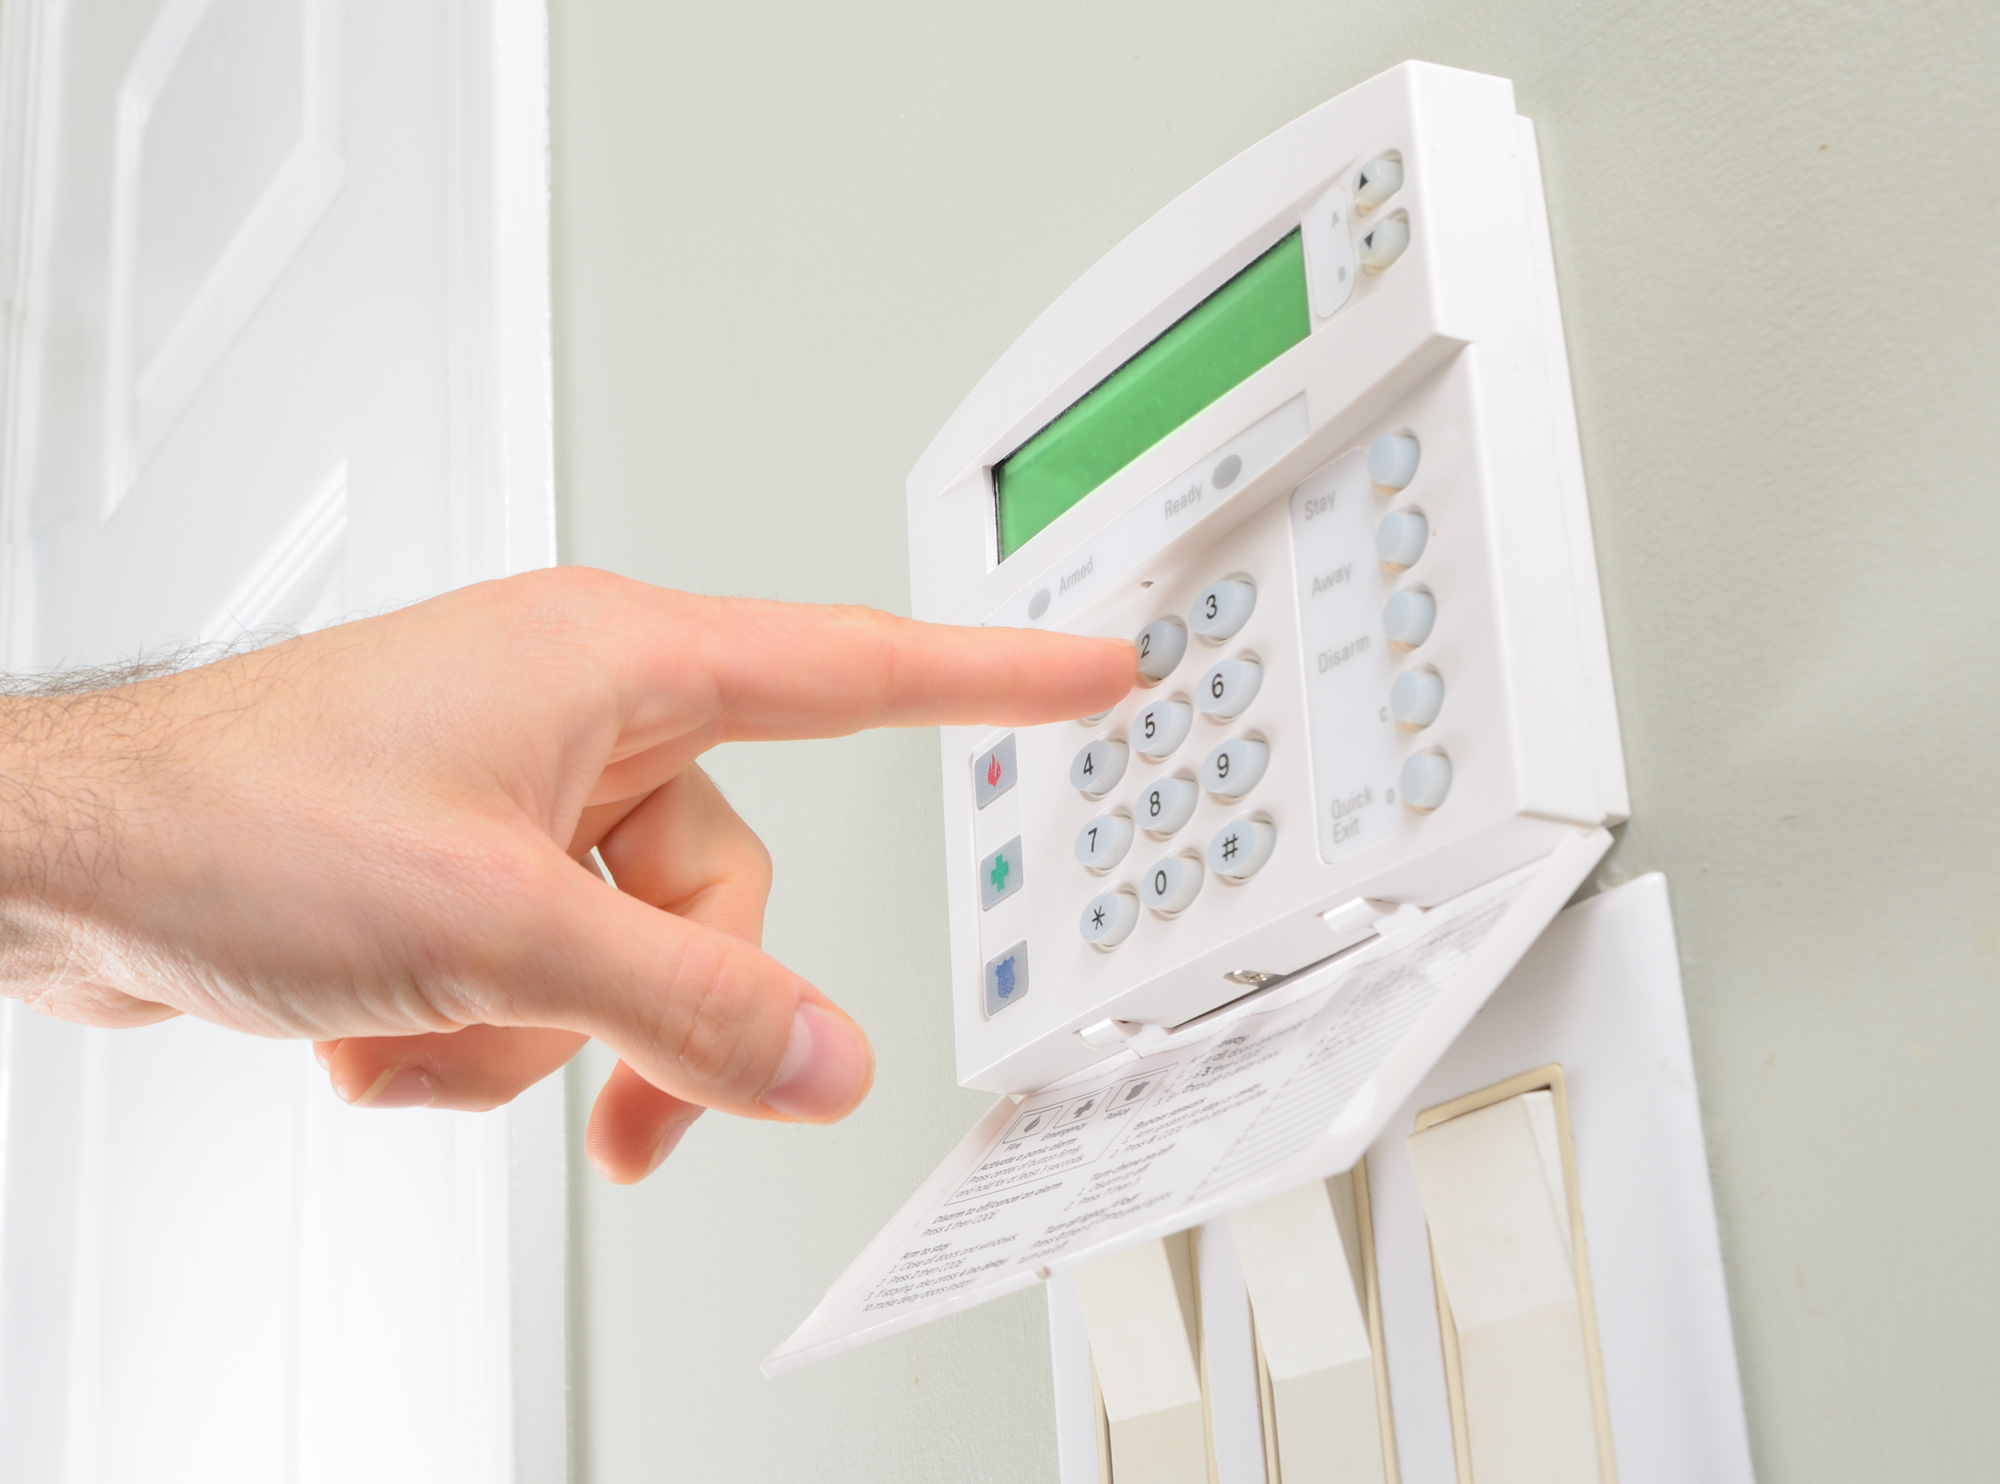 How to Choose a Home Security System That's Right For You In 9 Steps